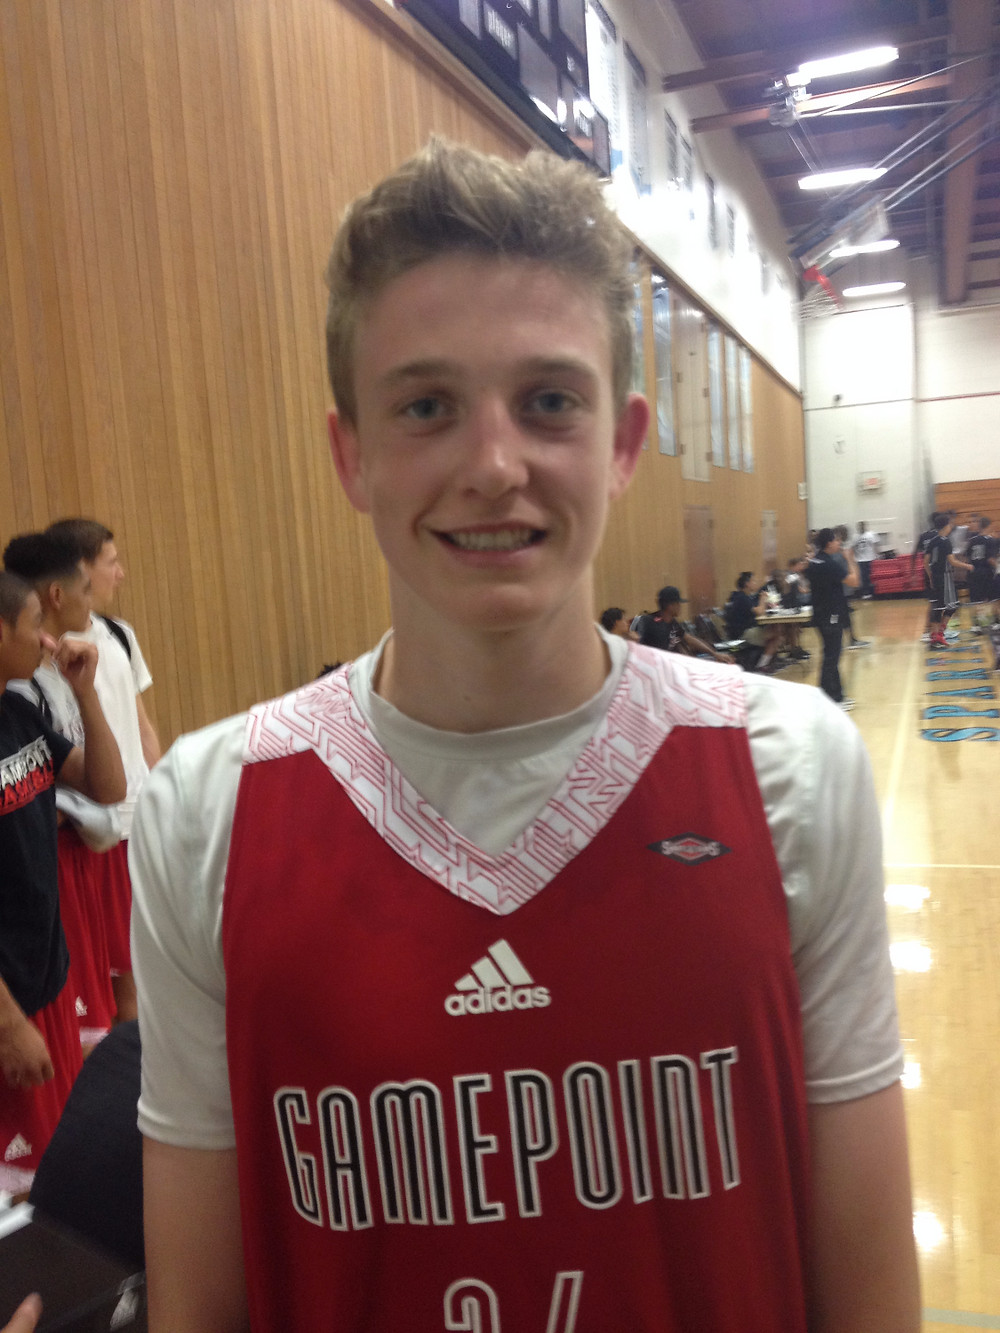 2016 Del Norte/ Gamepoint W Conner Nelson impressed at SD Spring Showcase